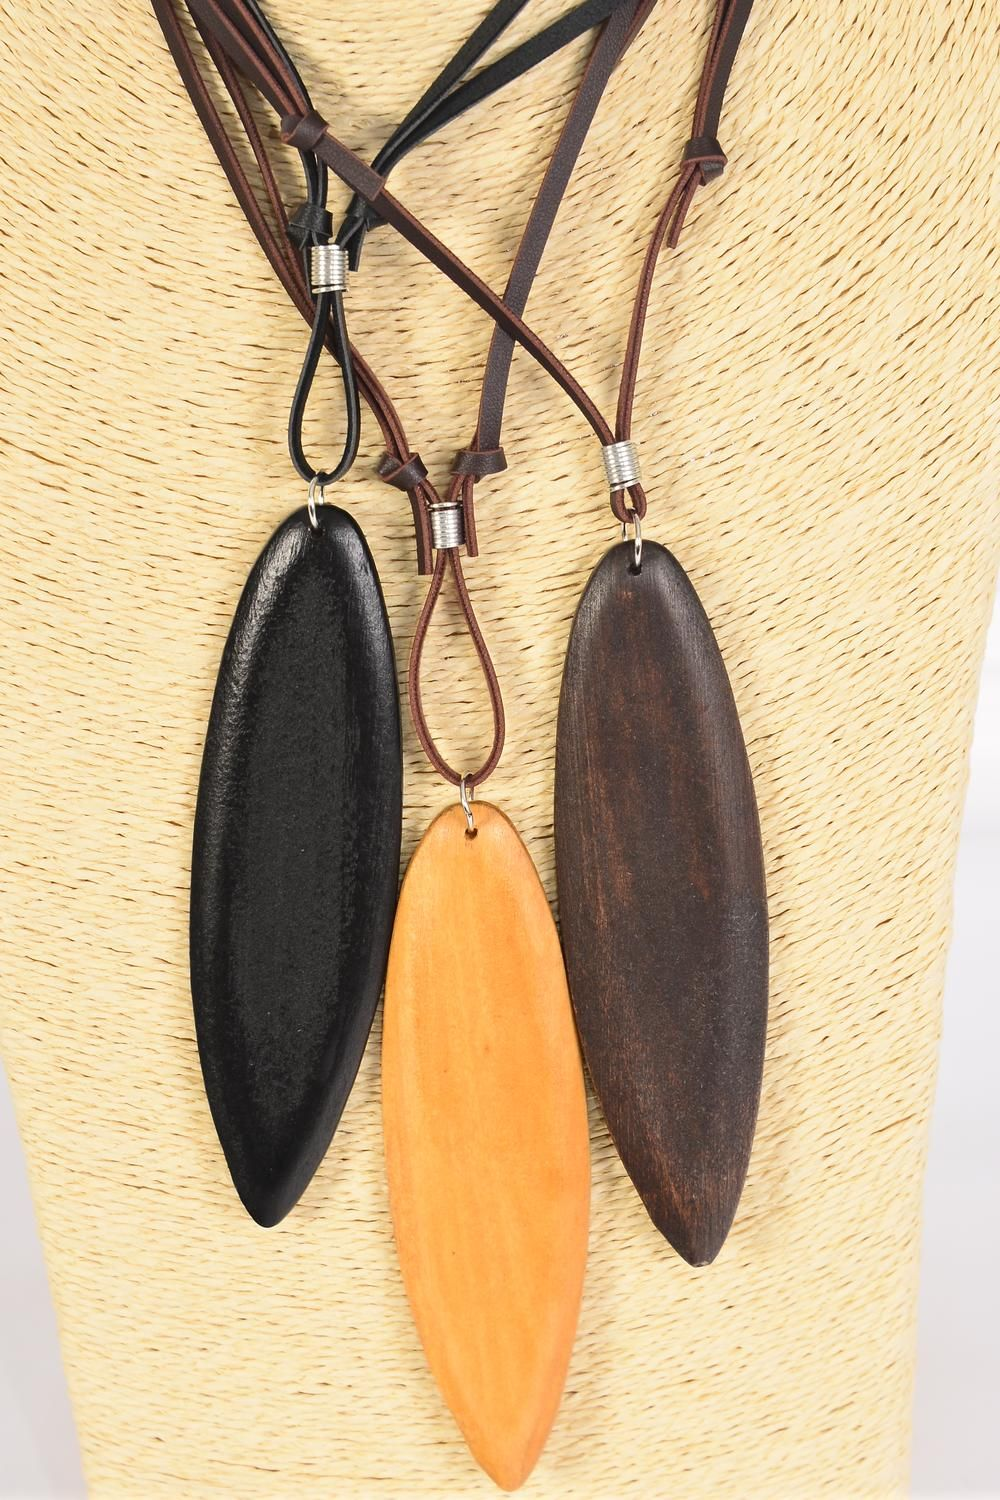 "Men's Leather Necklace Wood Pendant/DZ **Adjustable** Feather Size-5""x 1.5"" Wide,4 of each Color Asst,Hang Tag & OPP Bag & UPC Code -"